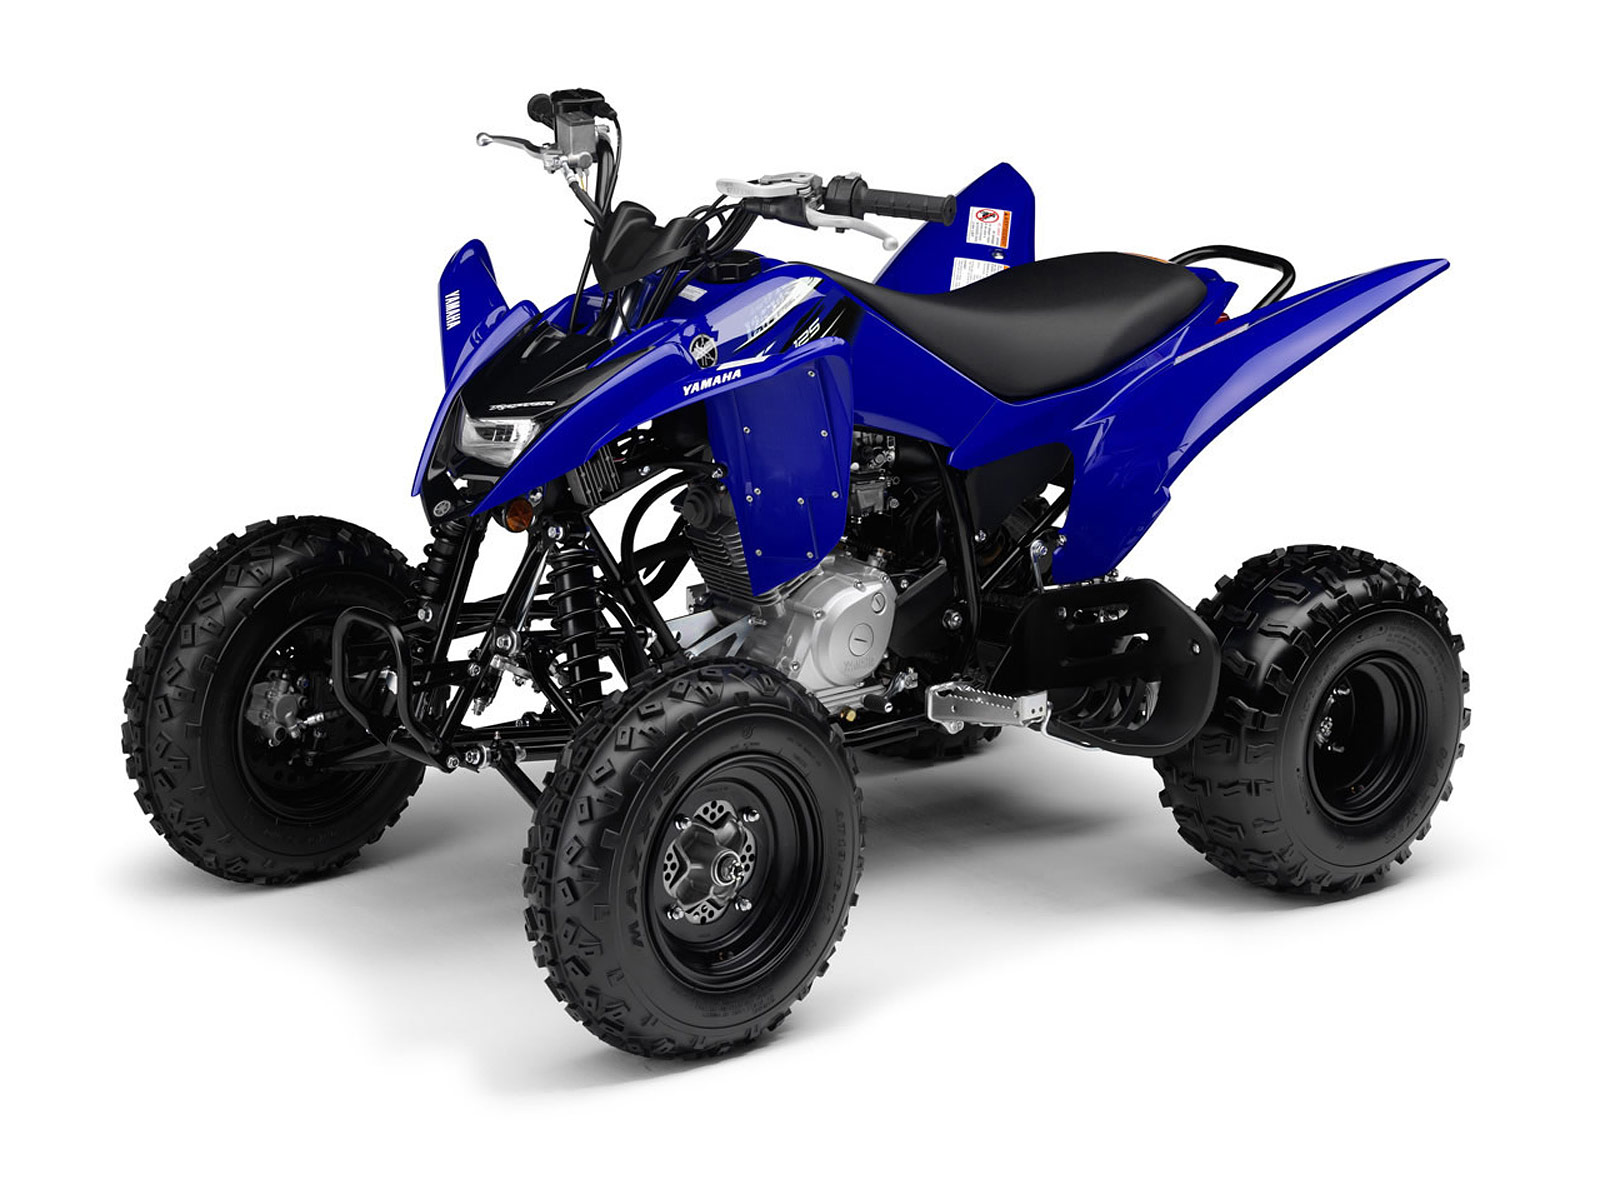 yamaha insurance information 2012 raptor 125 atv pictures. Black Bedroom Furniture Sets. Home Design Ideas